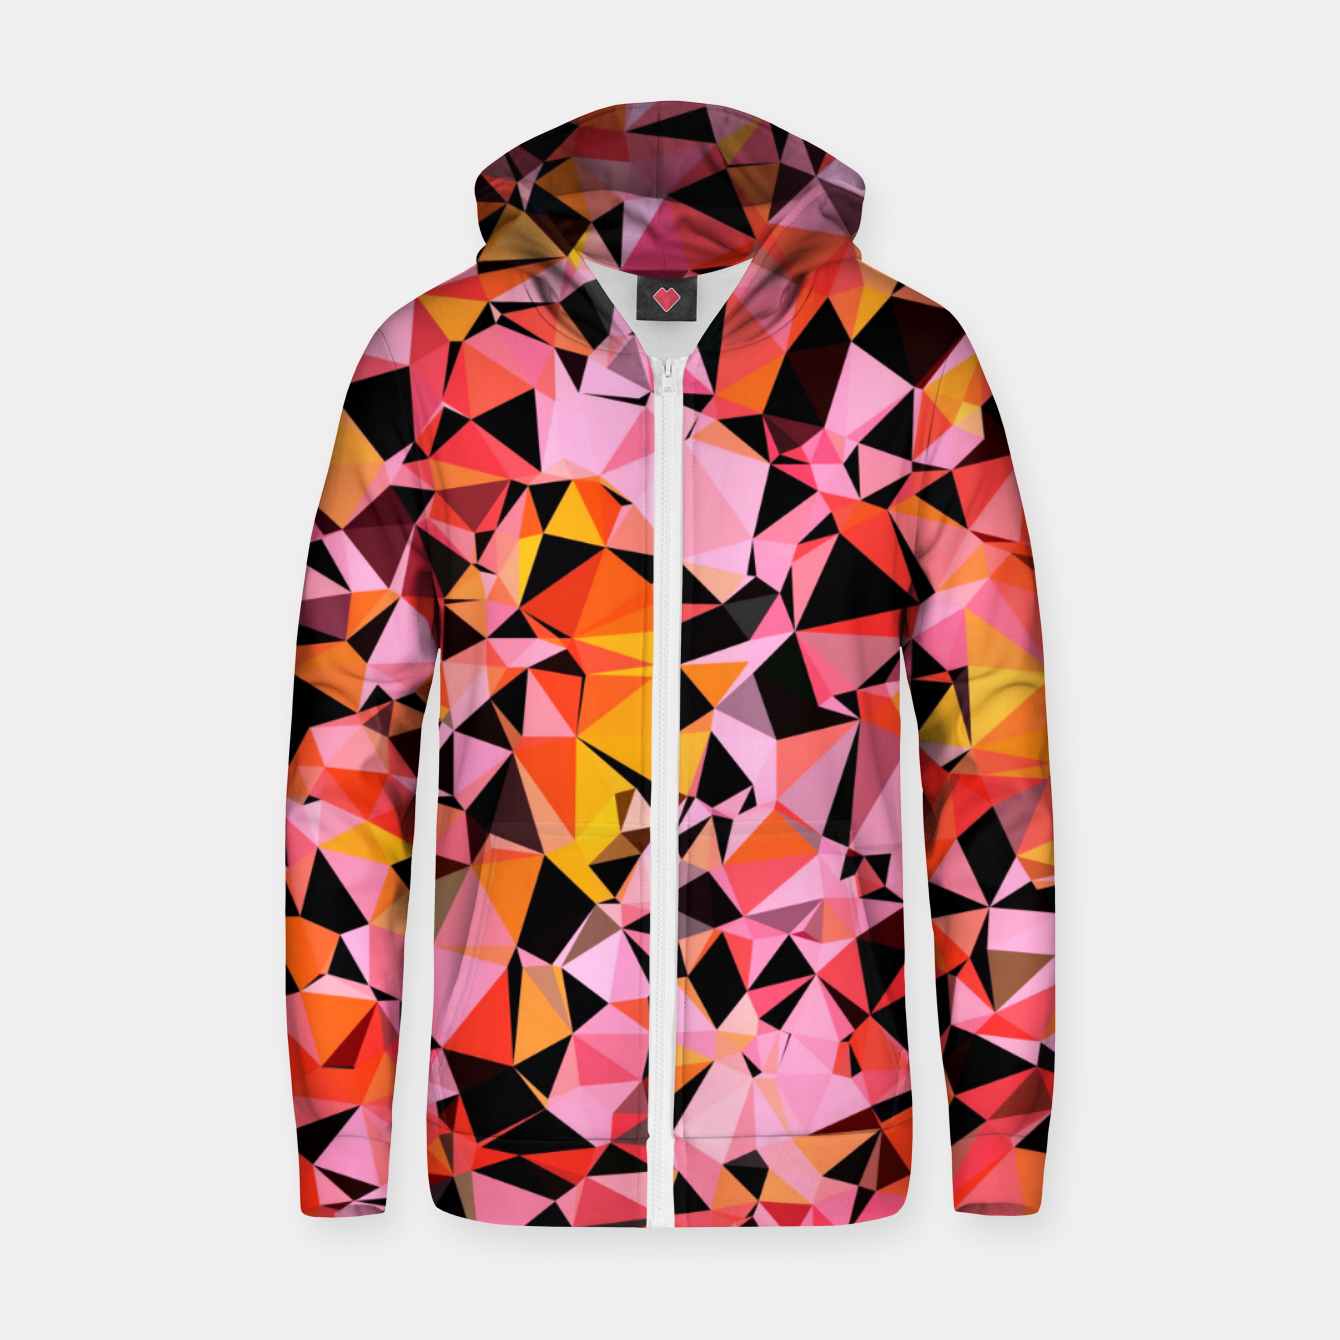 Image de geometric triangle pattern abstract in pink yellow black Zip up hoodie - Live Heroes